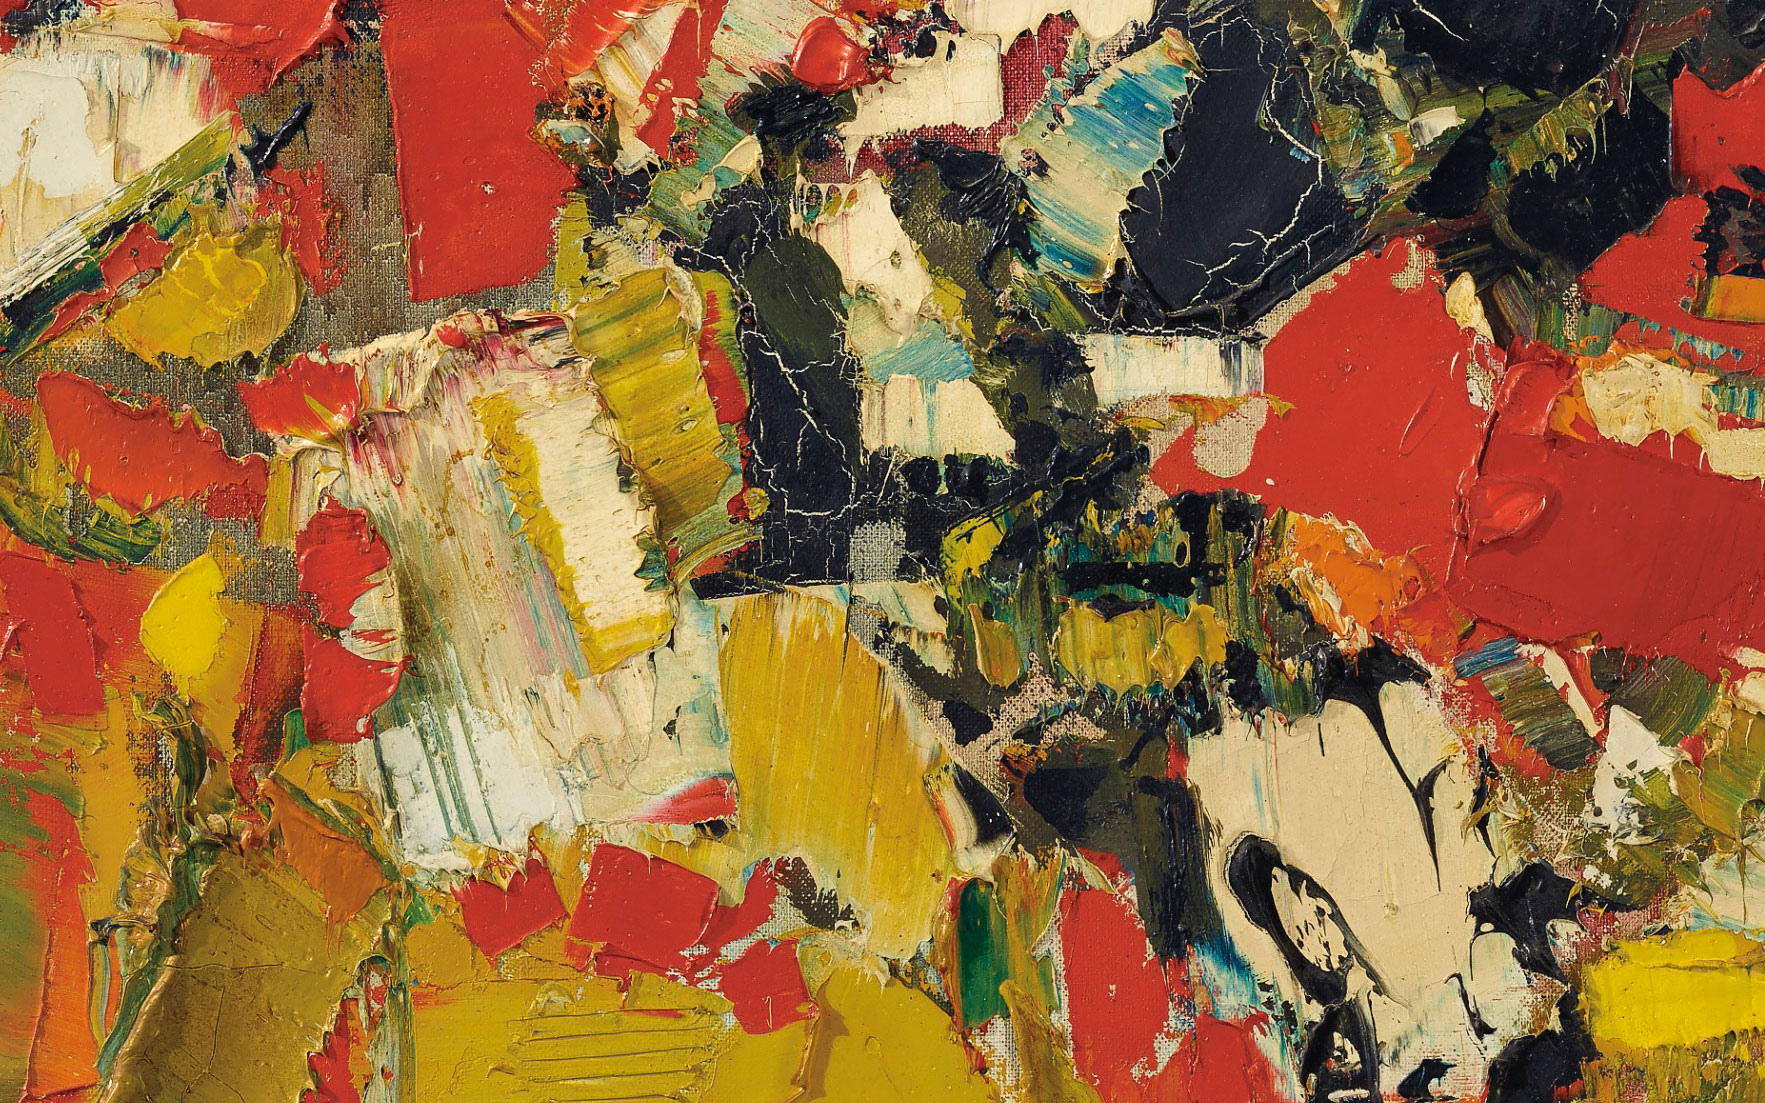 (Detail) Sayed Haider Raza (1922-2016), Plein Soleil, 1961. 36¼ x 28⅞  in (92.1 x 73.3  cm). Sold for $187,500 on 20 March 2019 at Christie's in New York